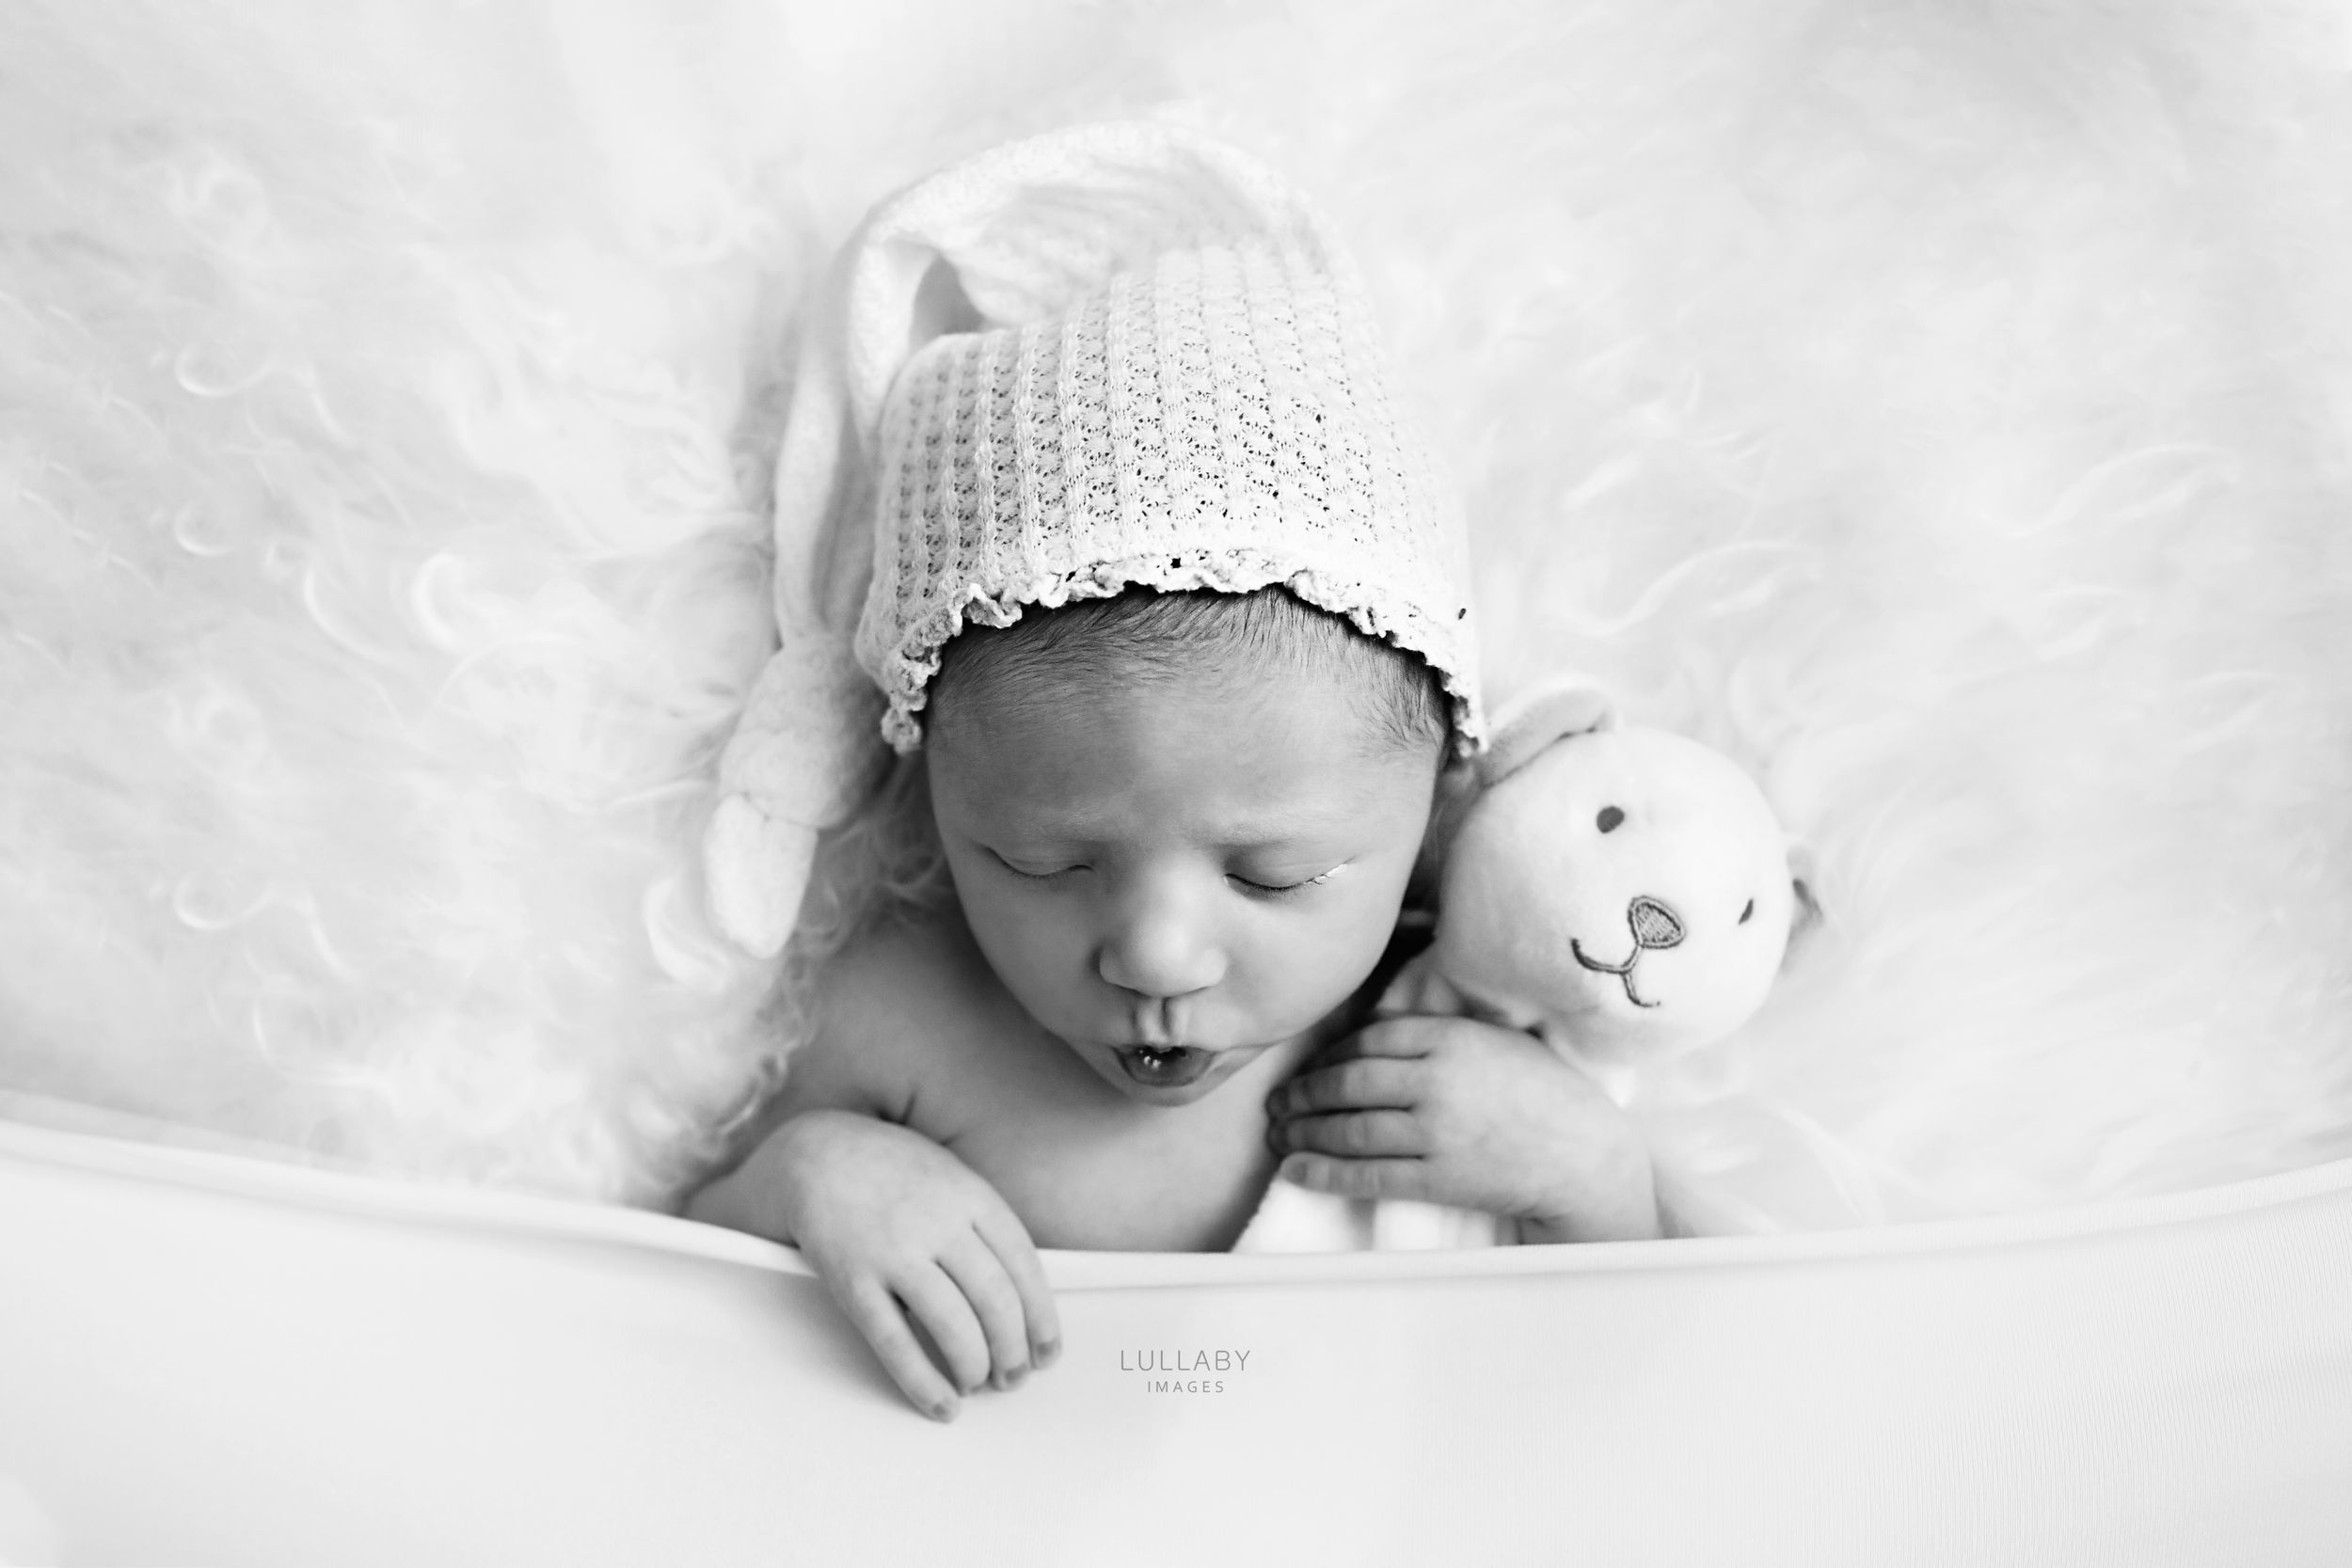 Baby photography lessons Lullaby Images